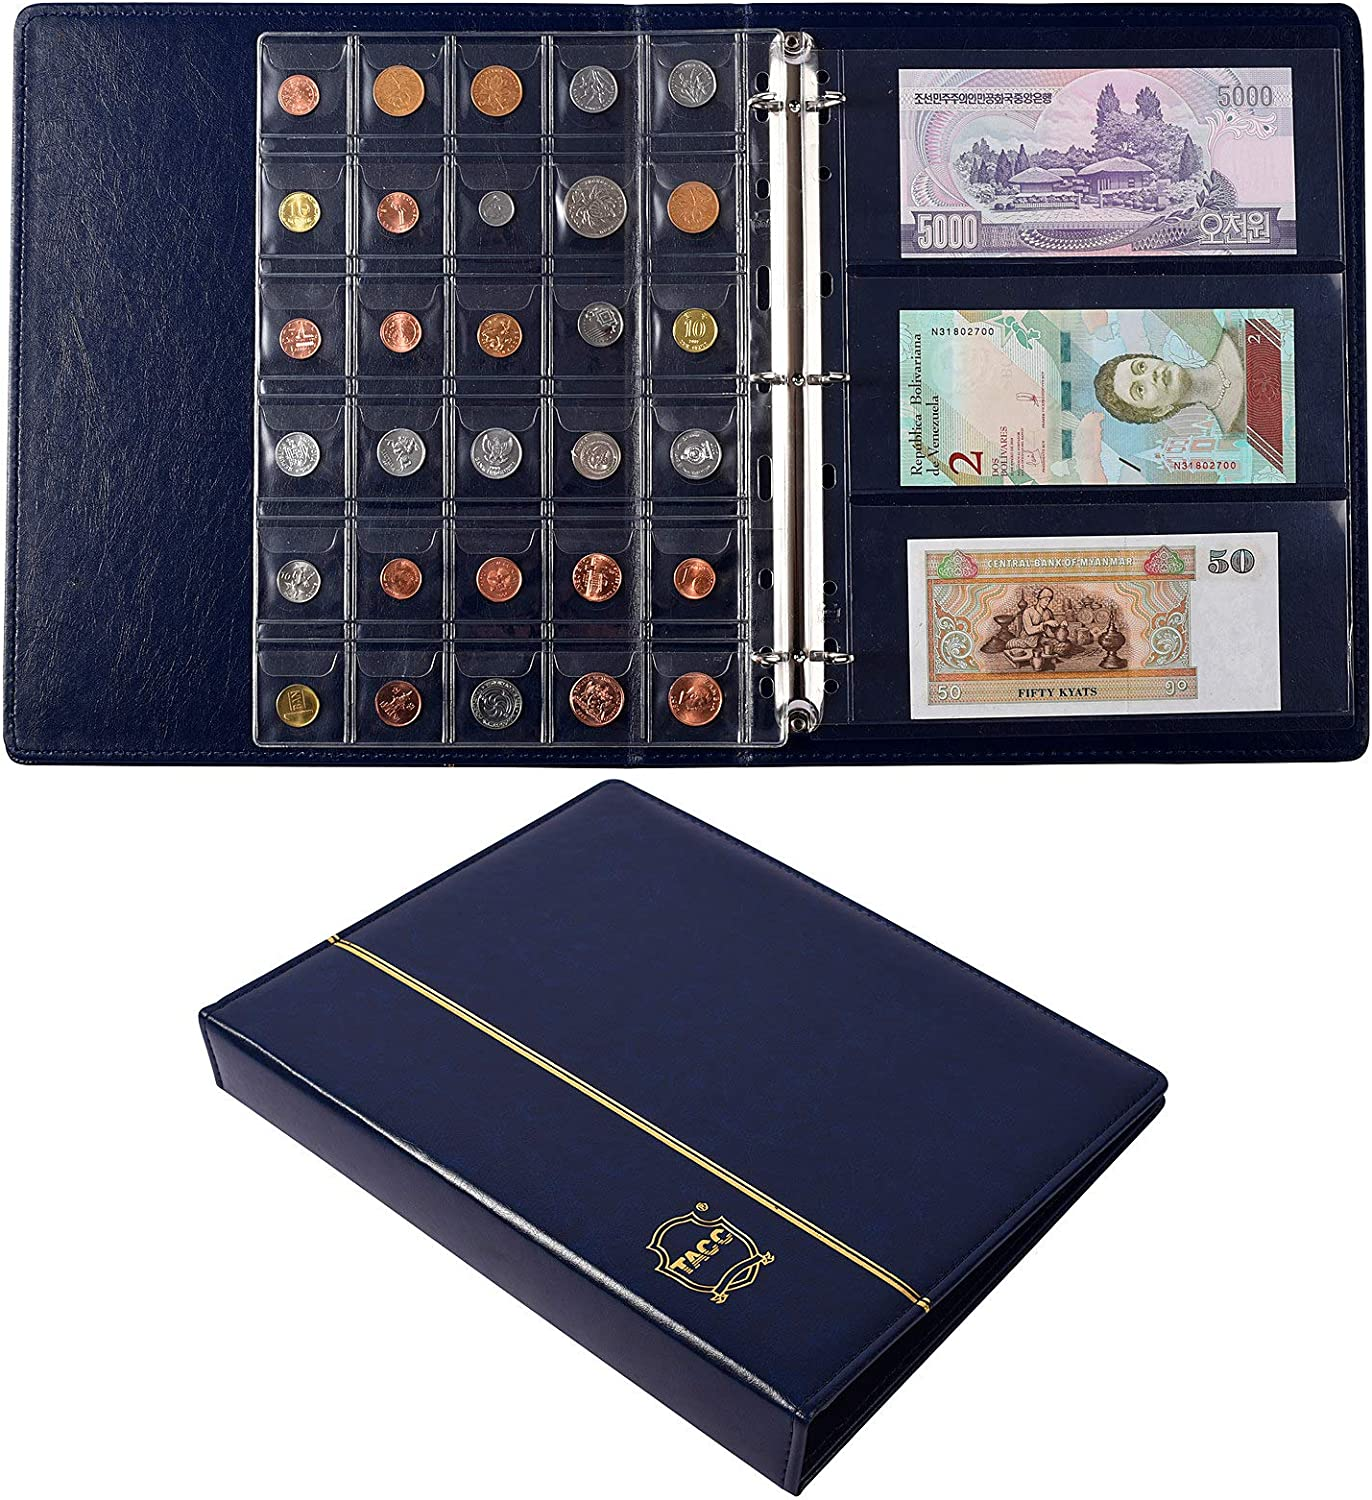 240pockets Banknotes Bills Collections 150pockets Coin Collections Album Book